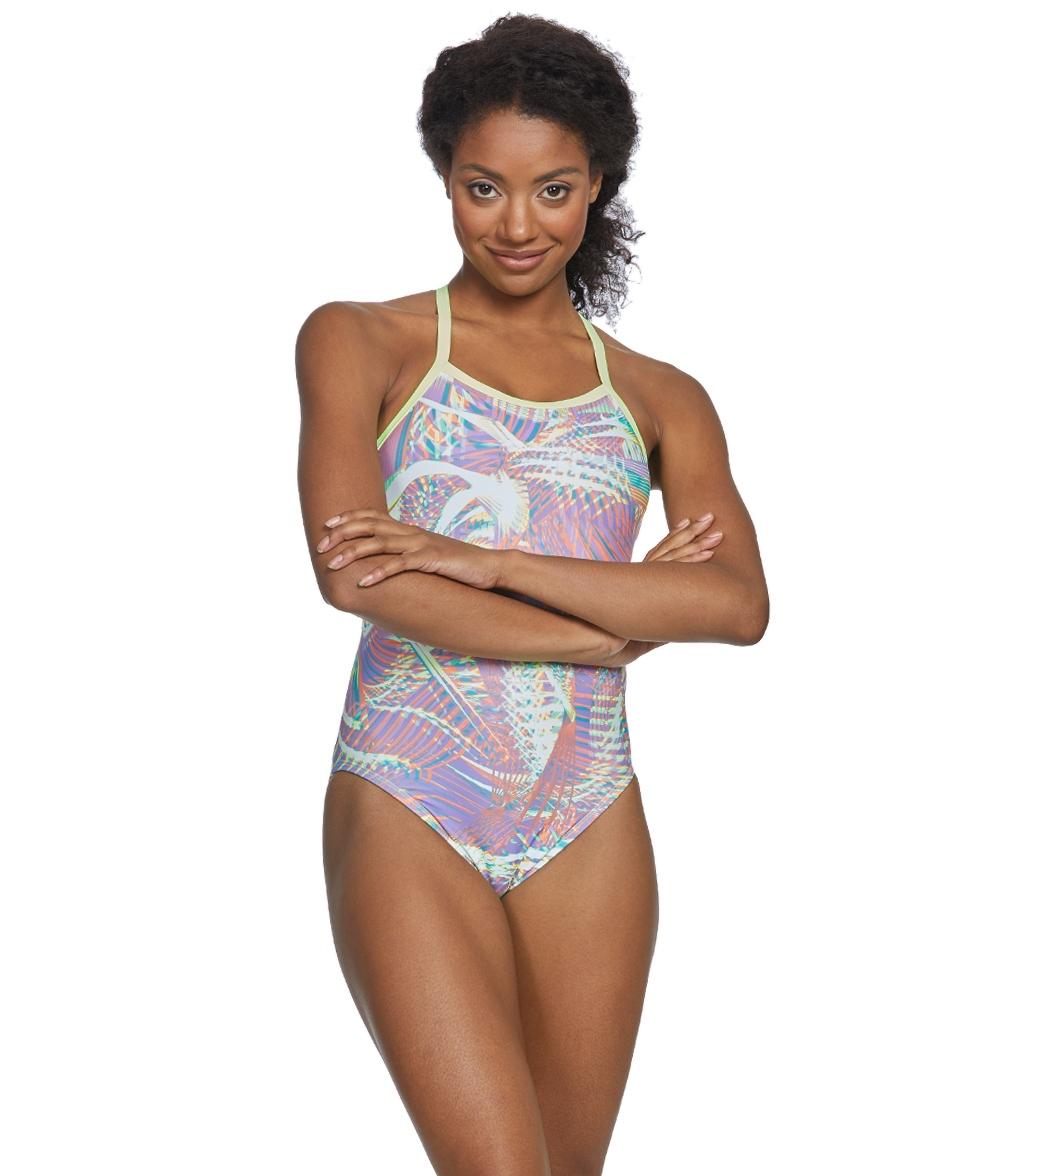 9992ff39abe00 Nike Women s Whirl Crosssback One Piece Swimsuit at SwimOutlet.com - Free  Shipping